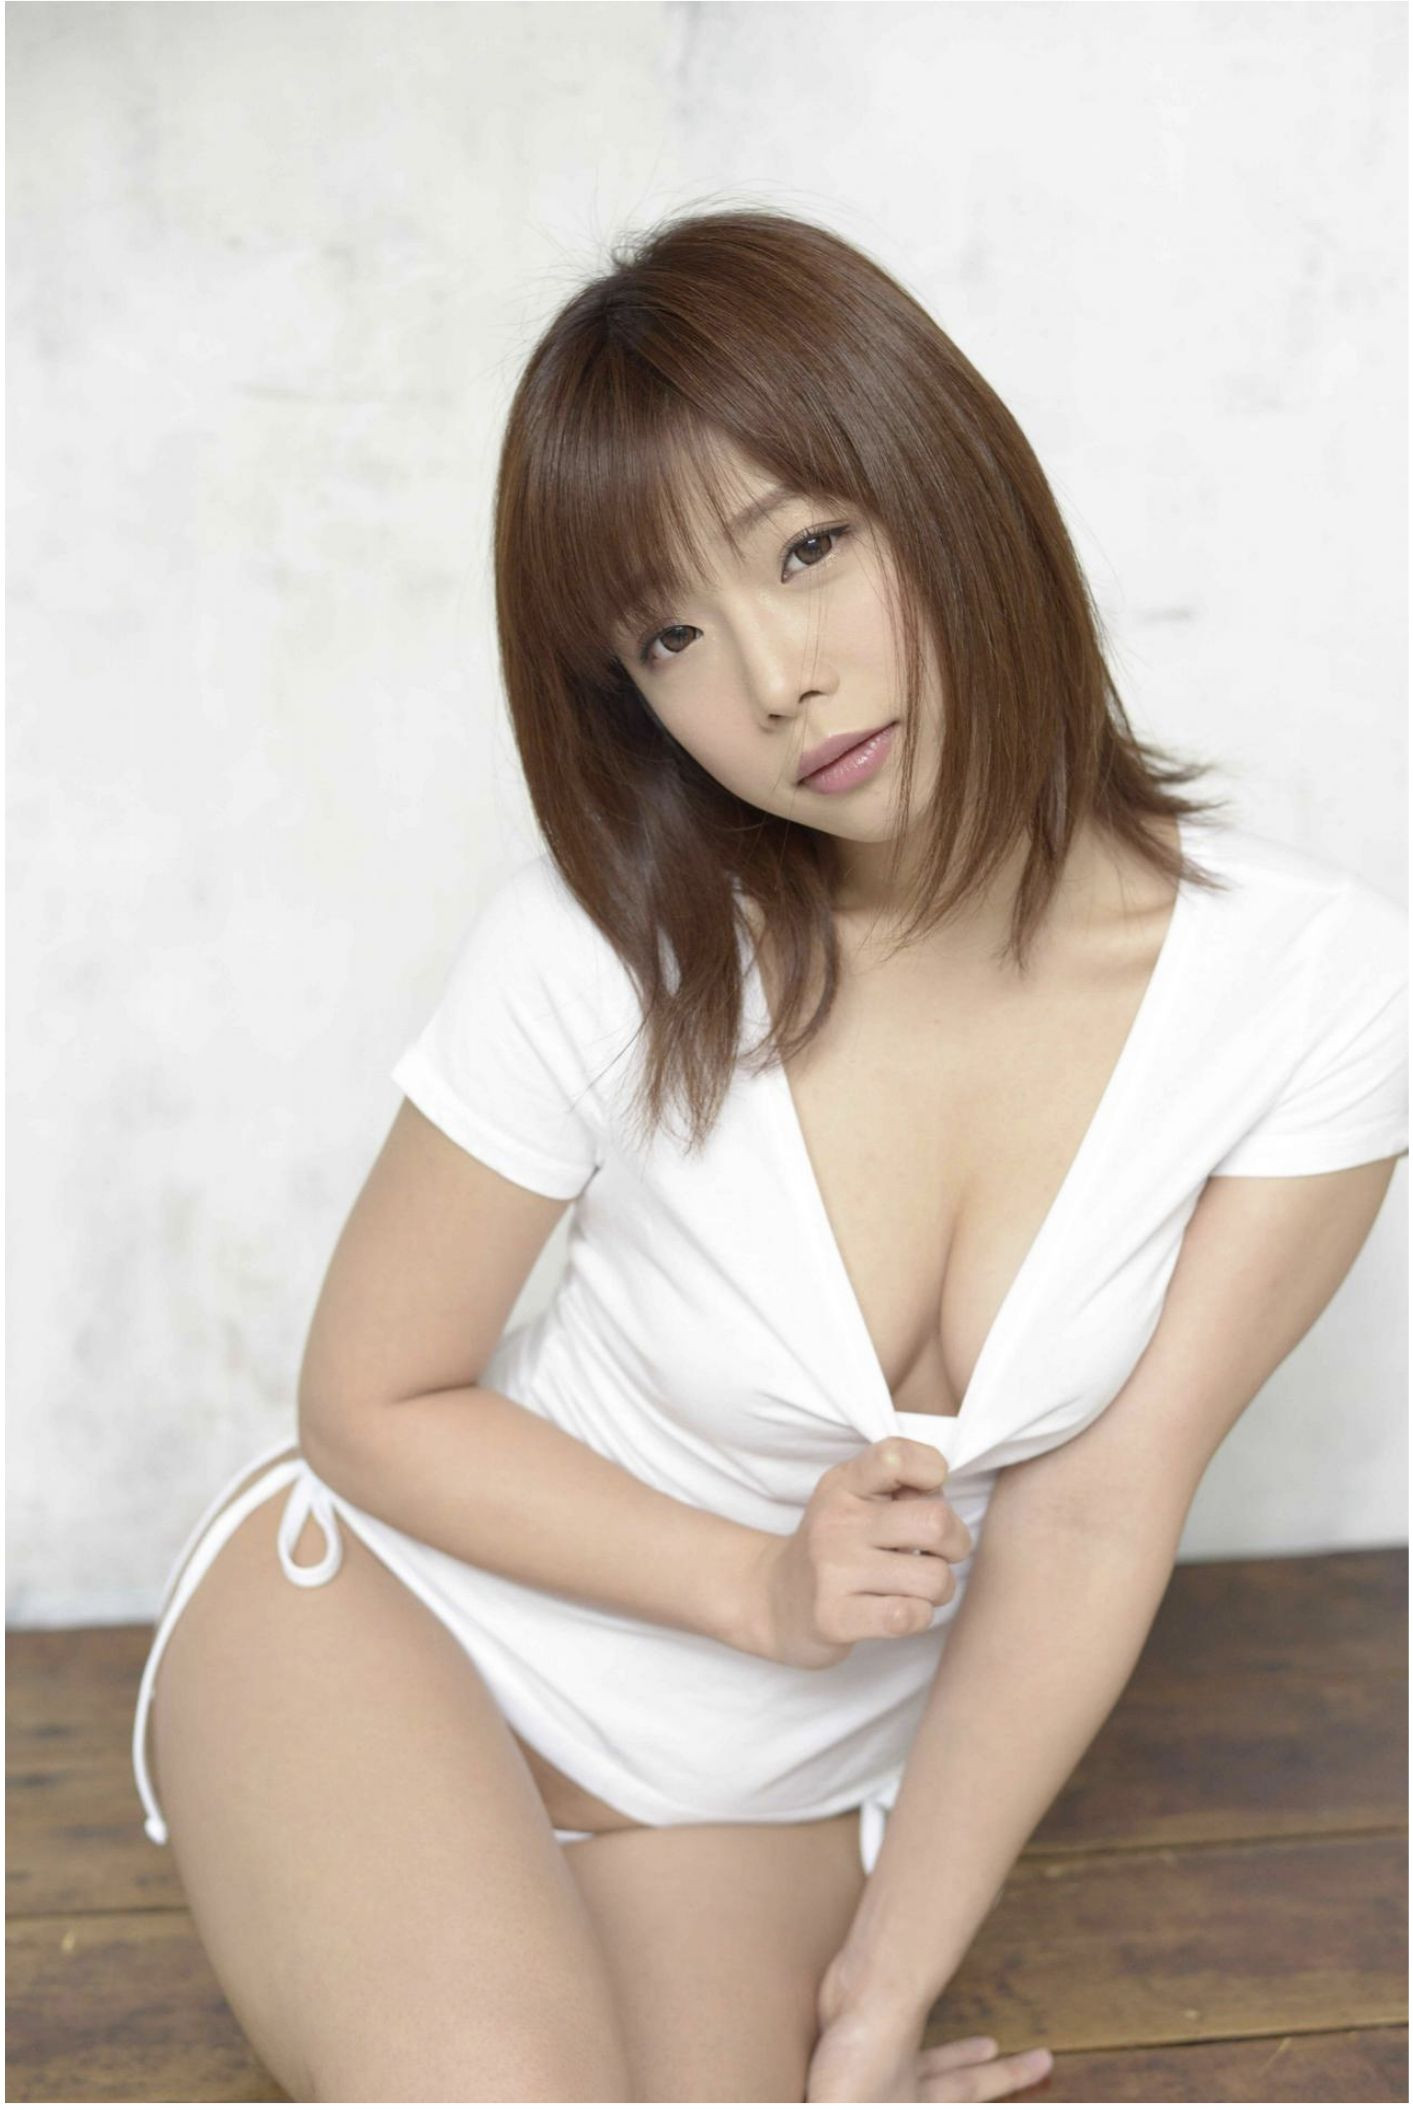 SOFT ON DEMAND GRAVURE COLLECTION 紗倉まな04 photo 016